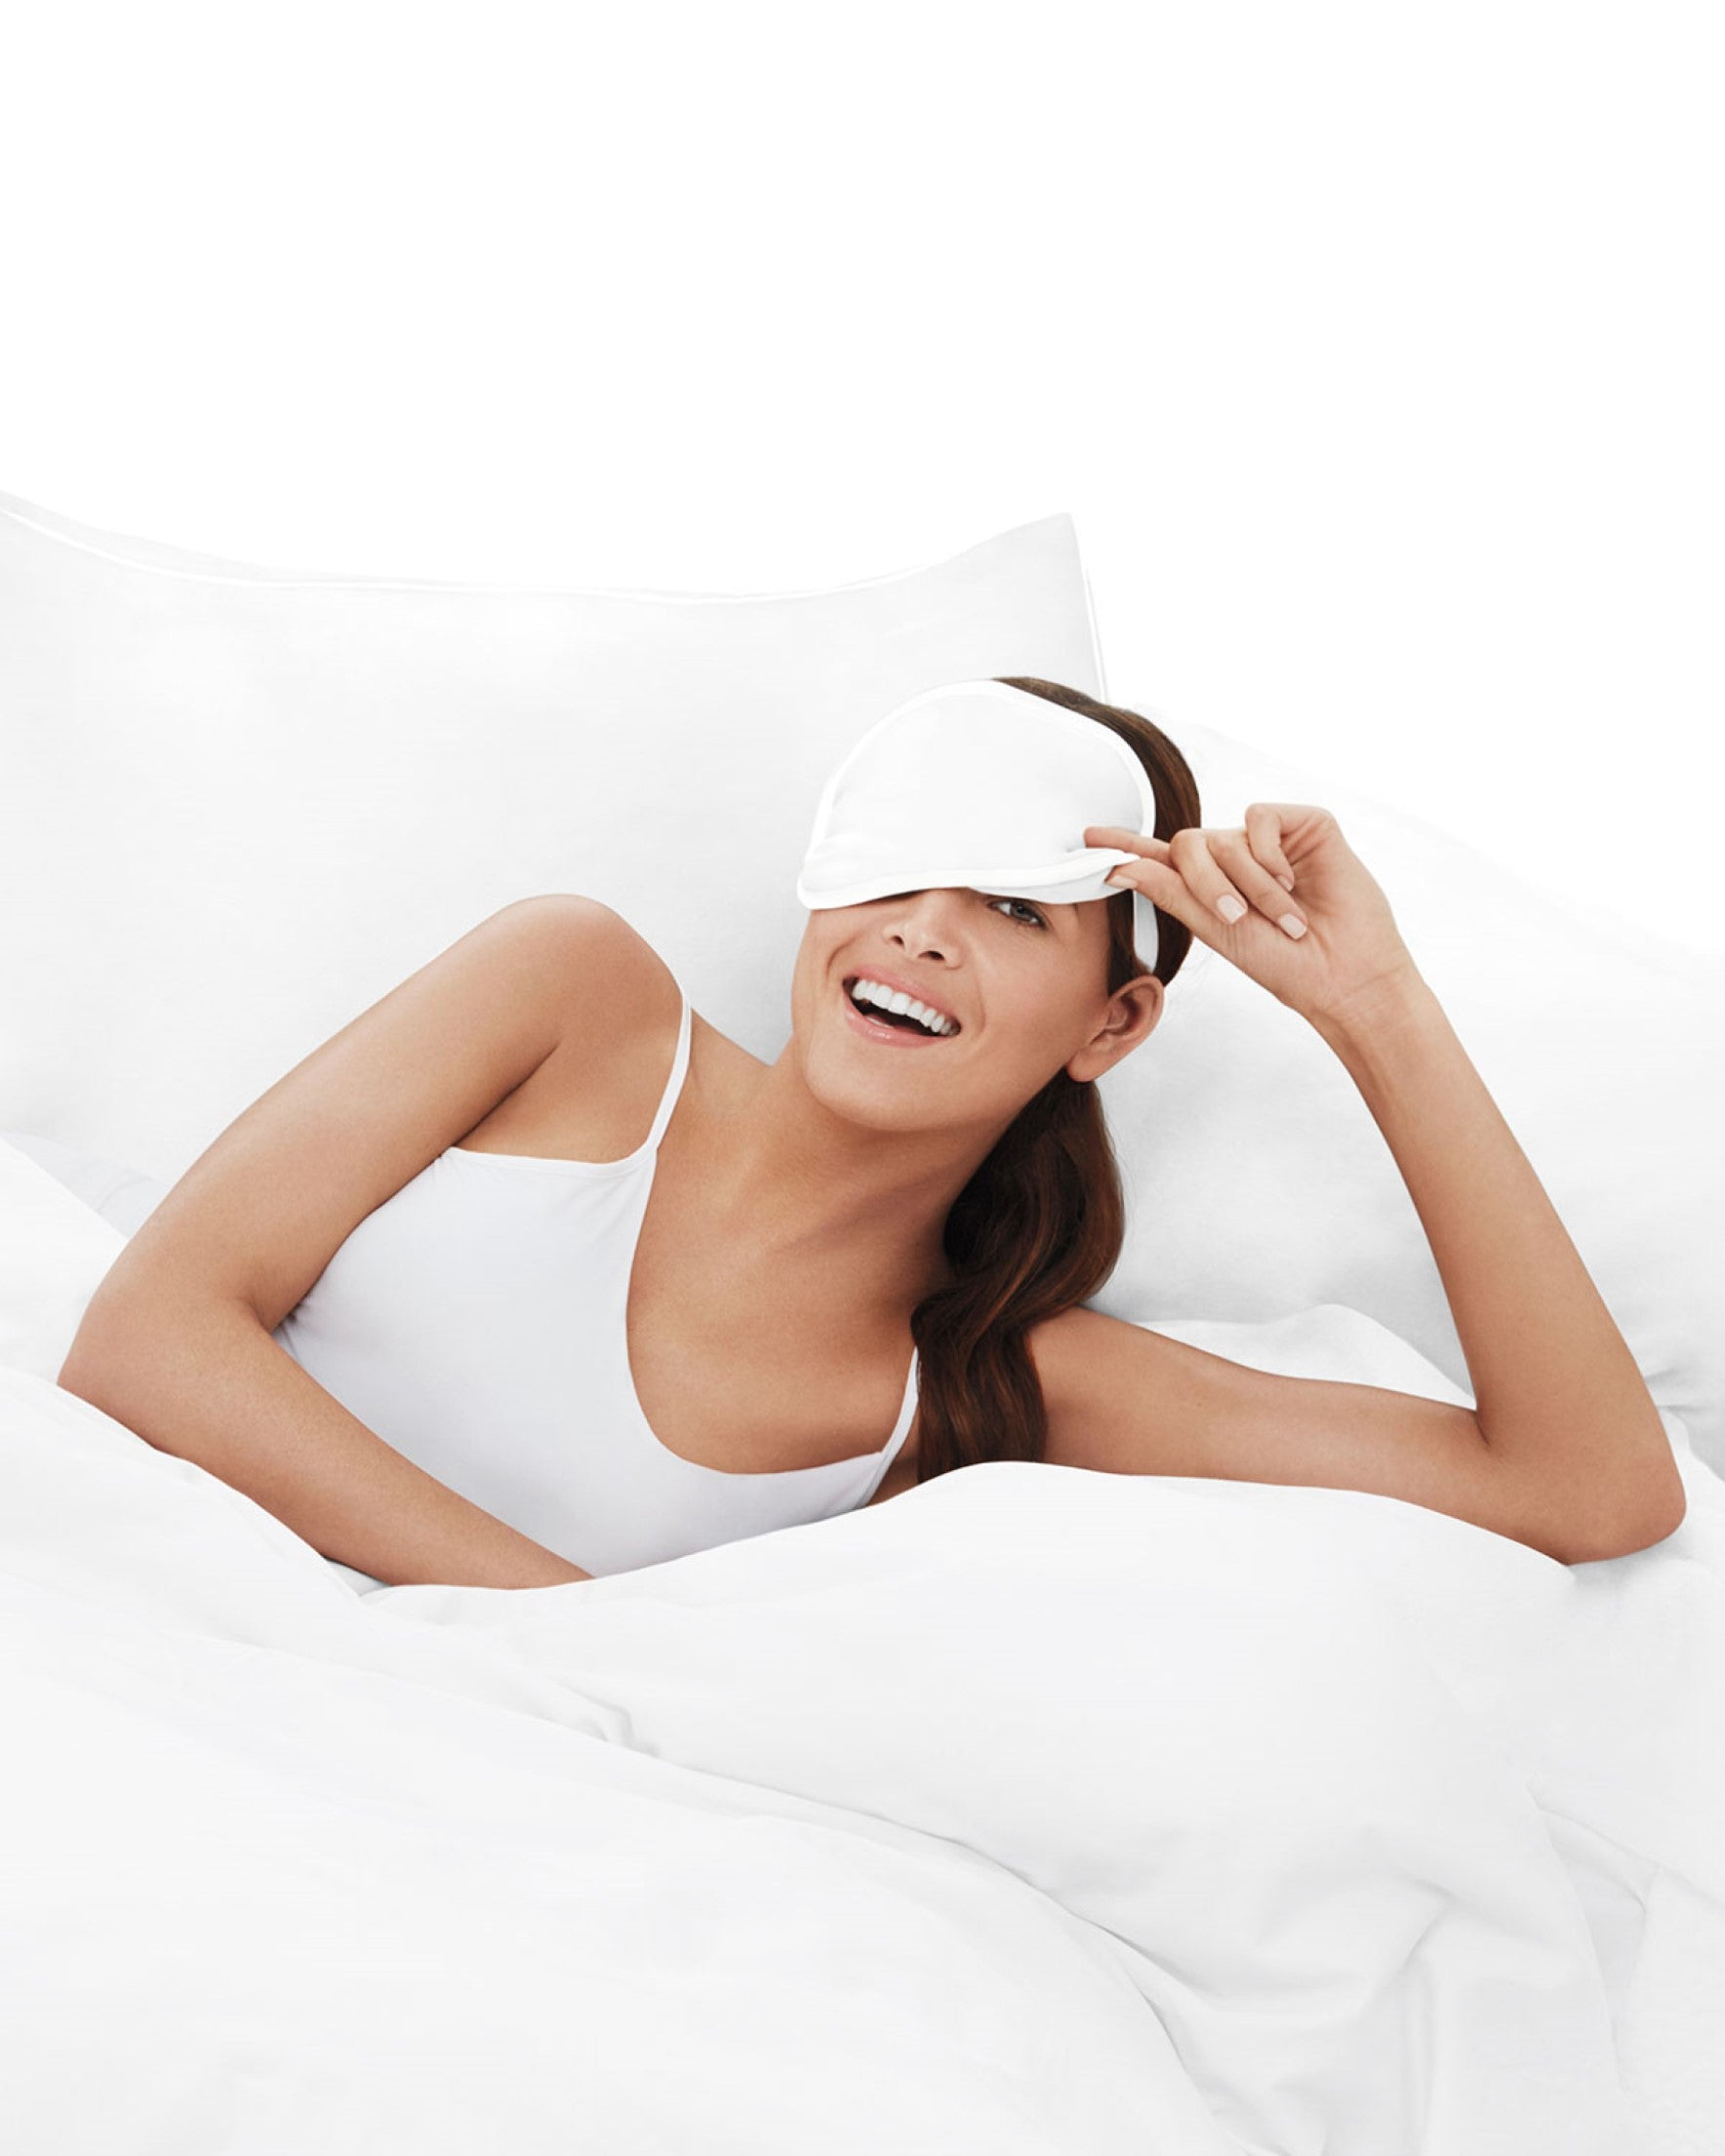 mē Glow Beauty Boosting Eye Mask - For Younger-Looking Eyes w/ Anti-Aging Copper Technology